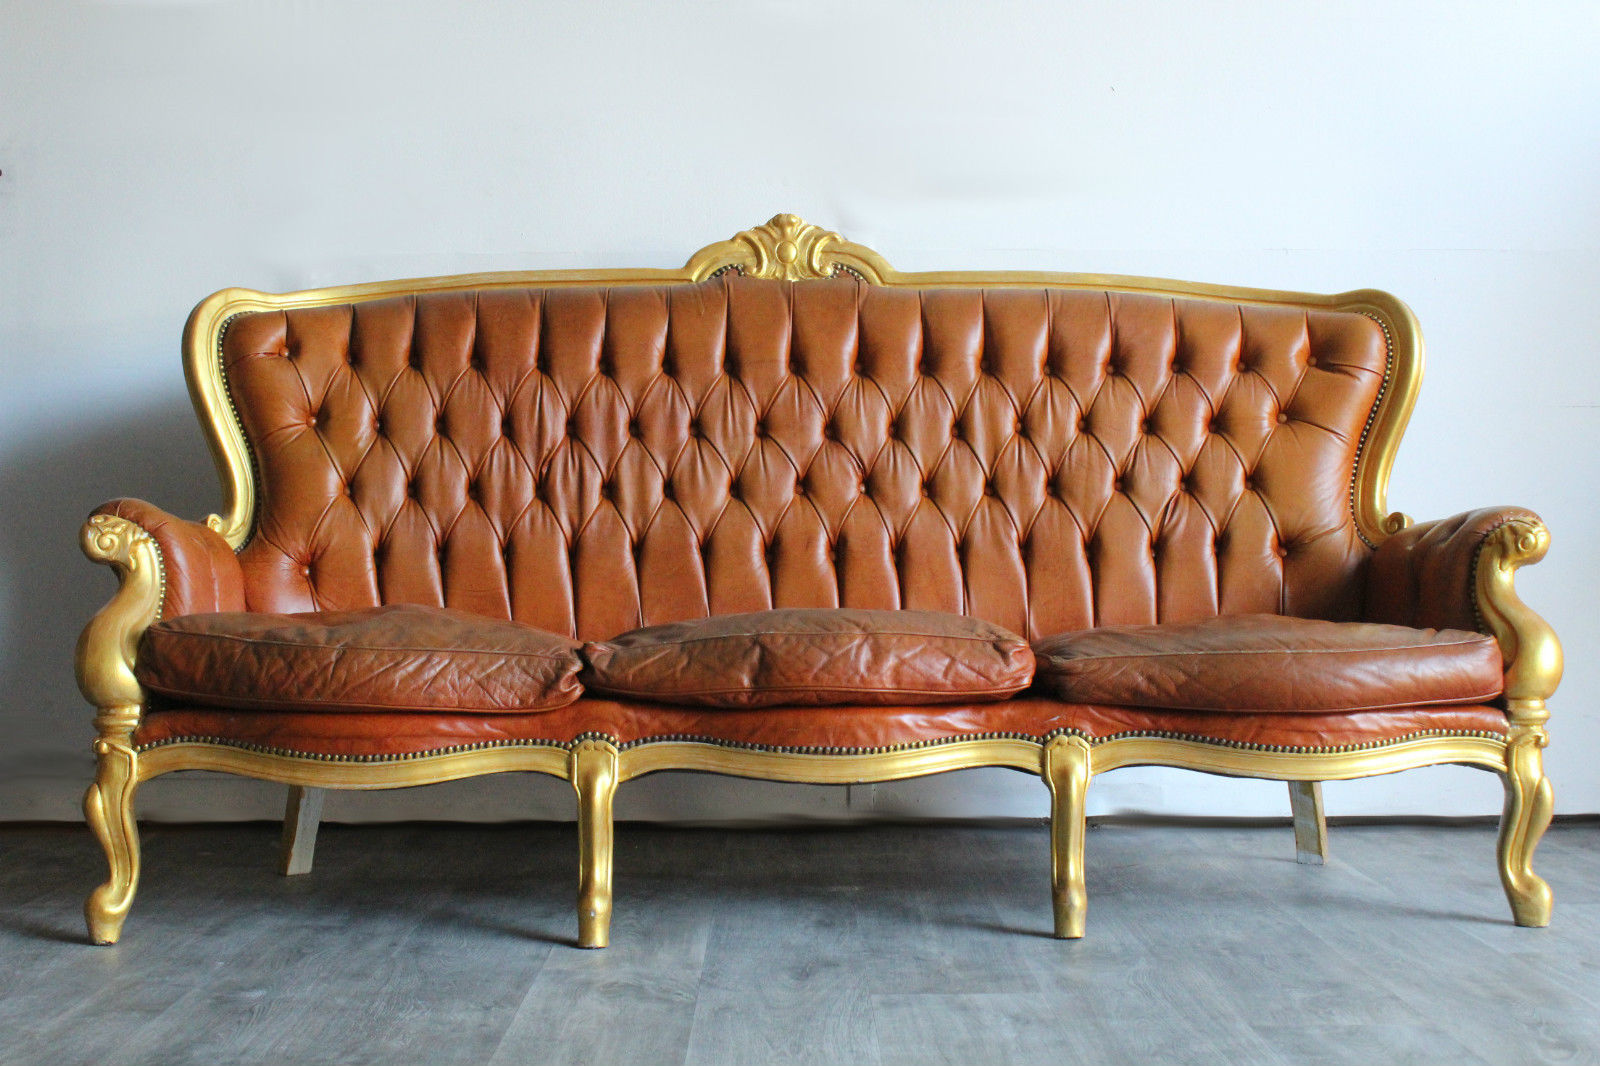 BAROCK SOFA Leder Chesterfield Couch antik Chippendale Unikat